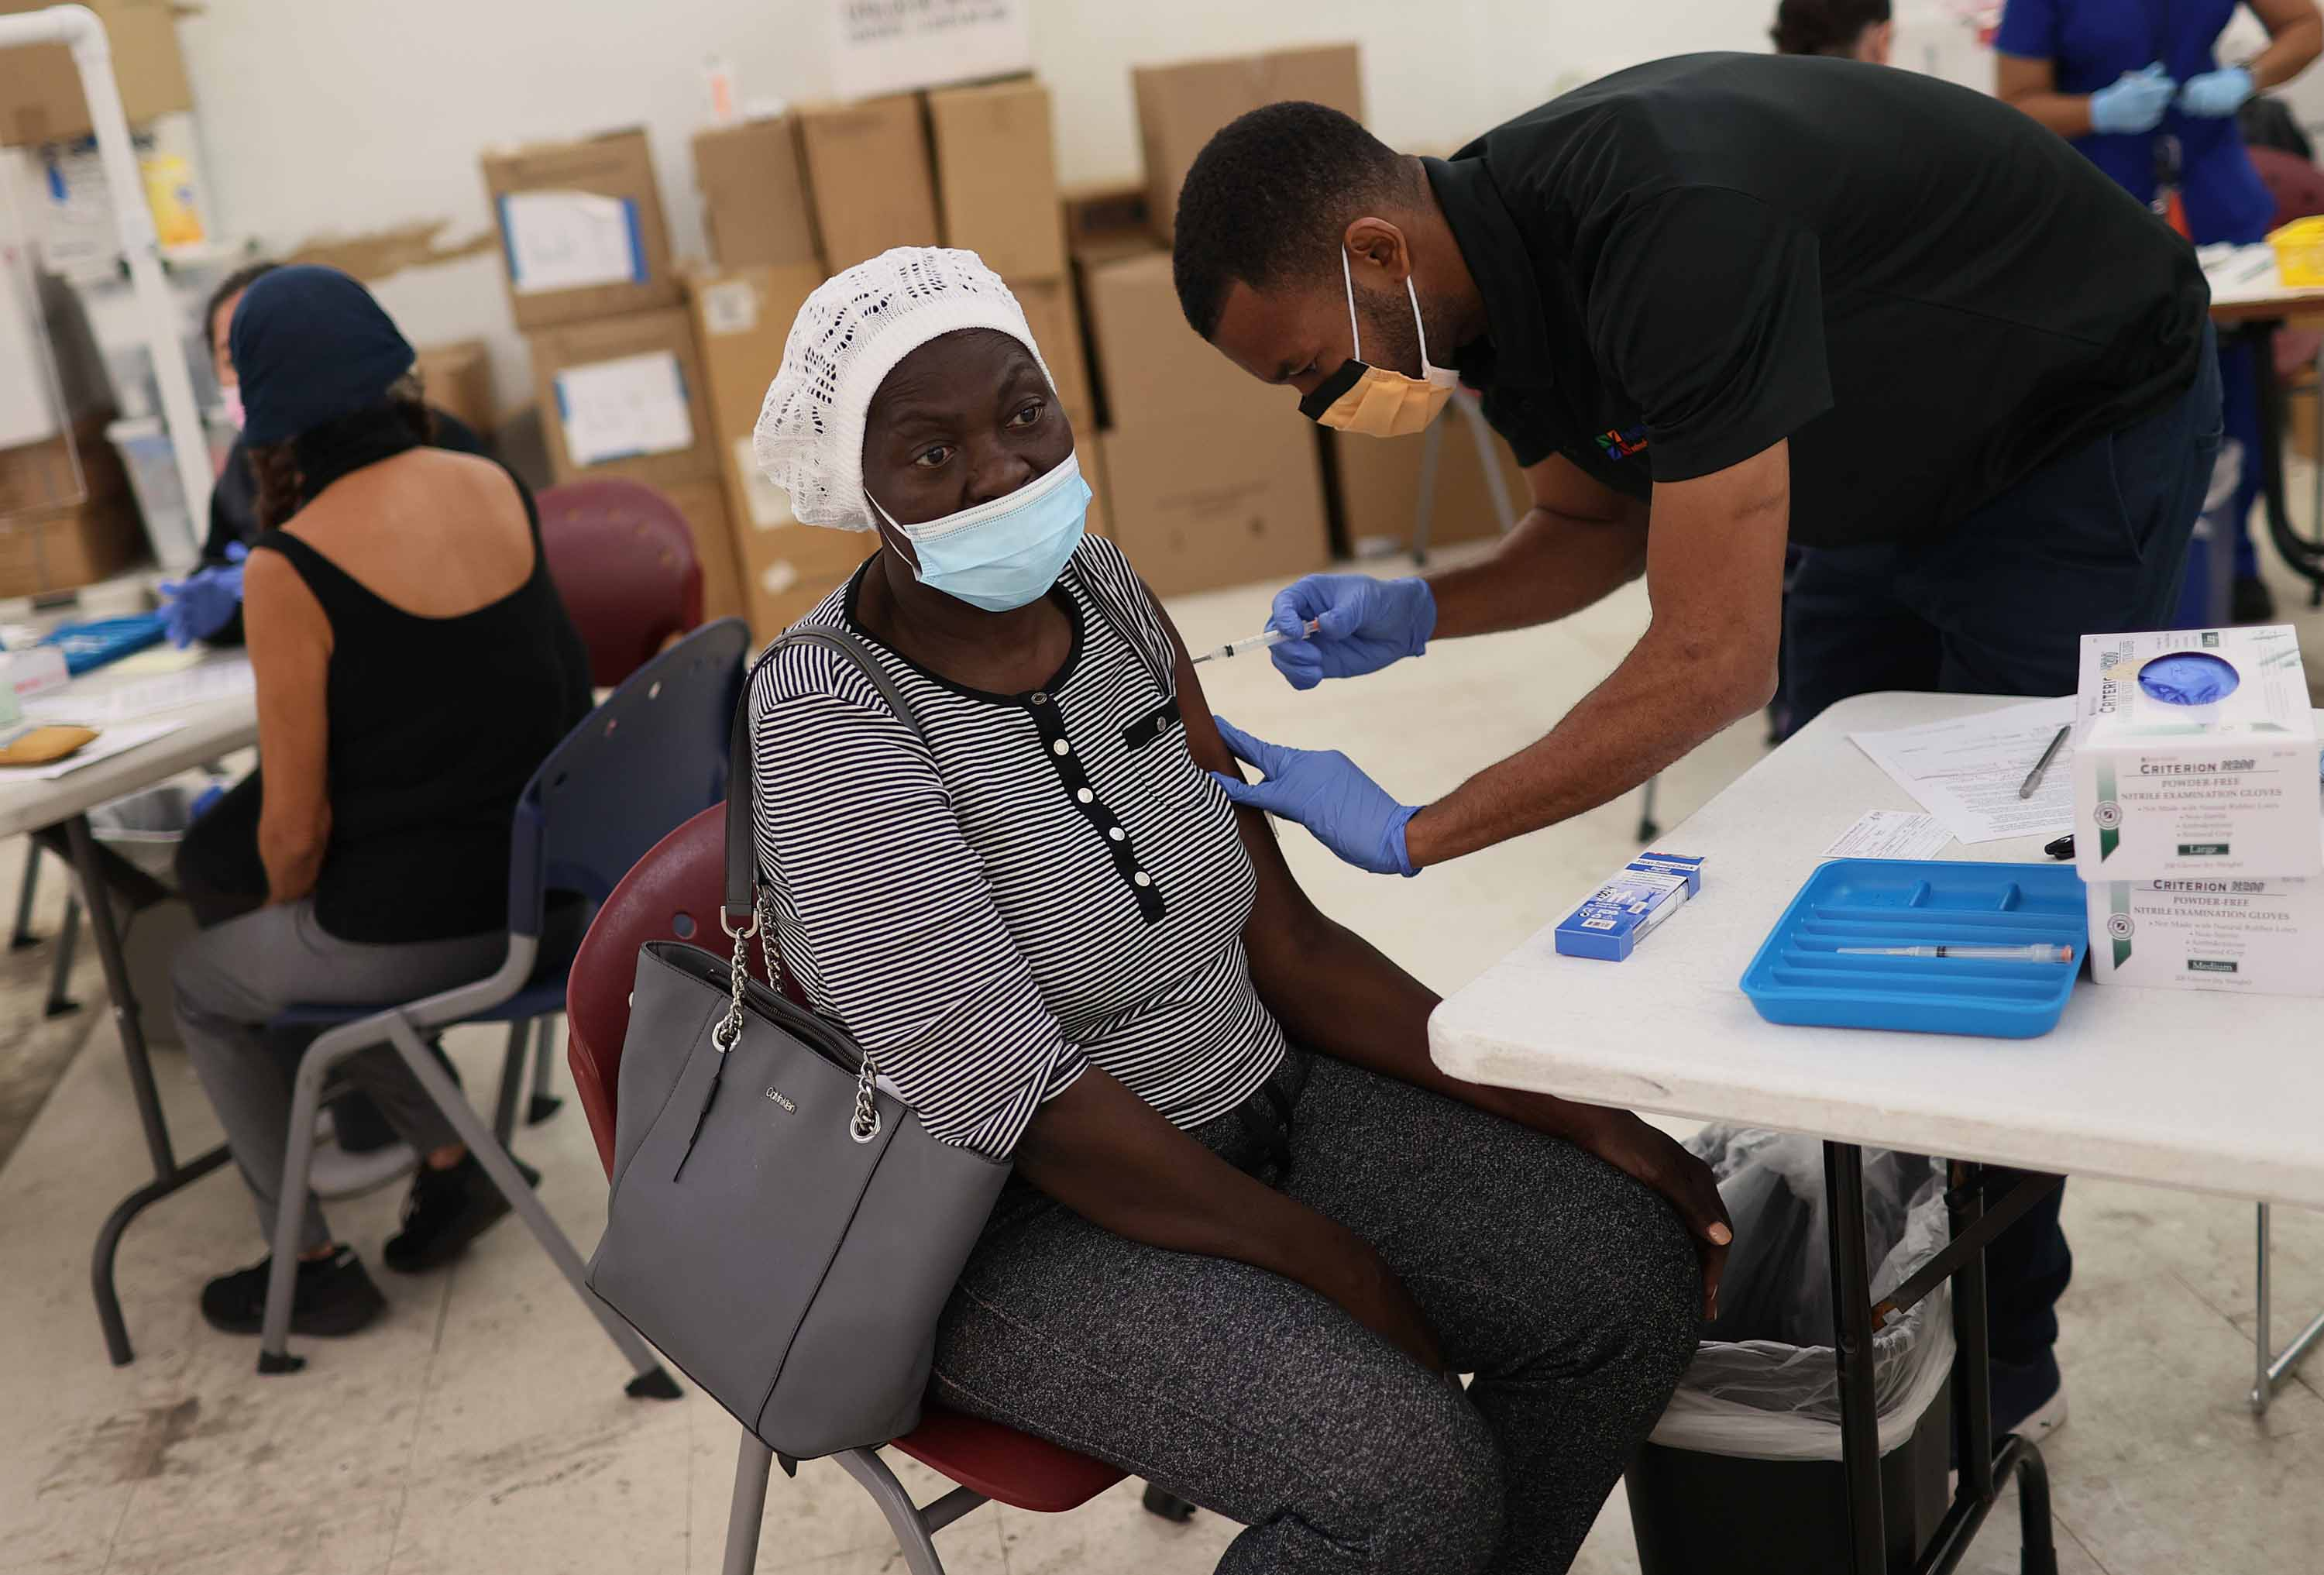 Medical Assistant Odilest Guerrier administers a Moderna COVID-19 vaccine to Marie Val at a clinic in Immokalee, Florida, on May 20.